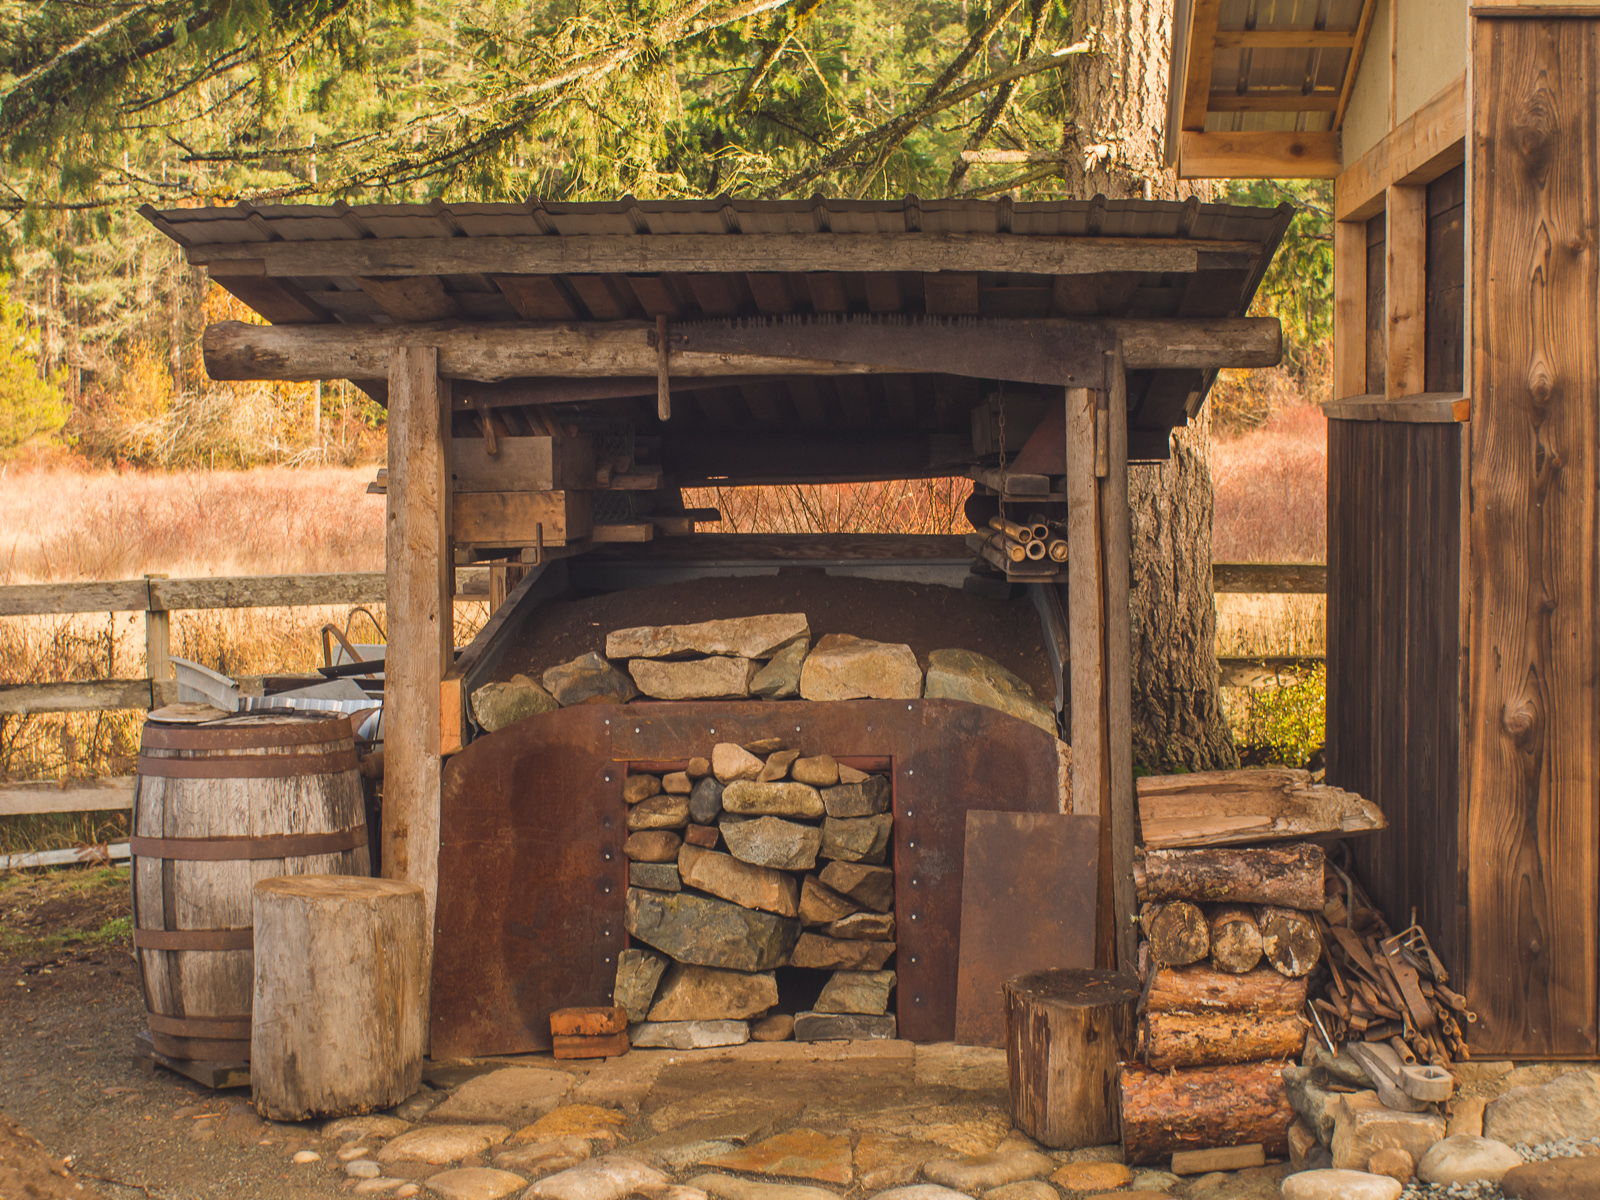 Building a Charcoal Making Kiln